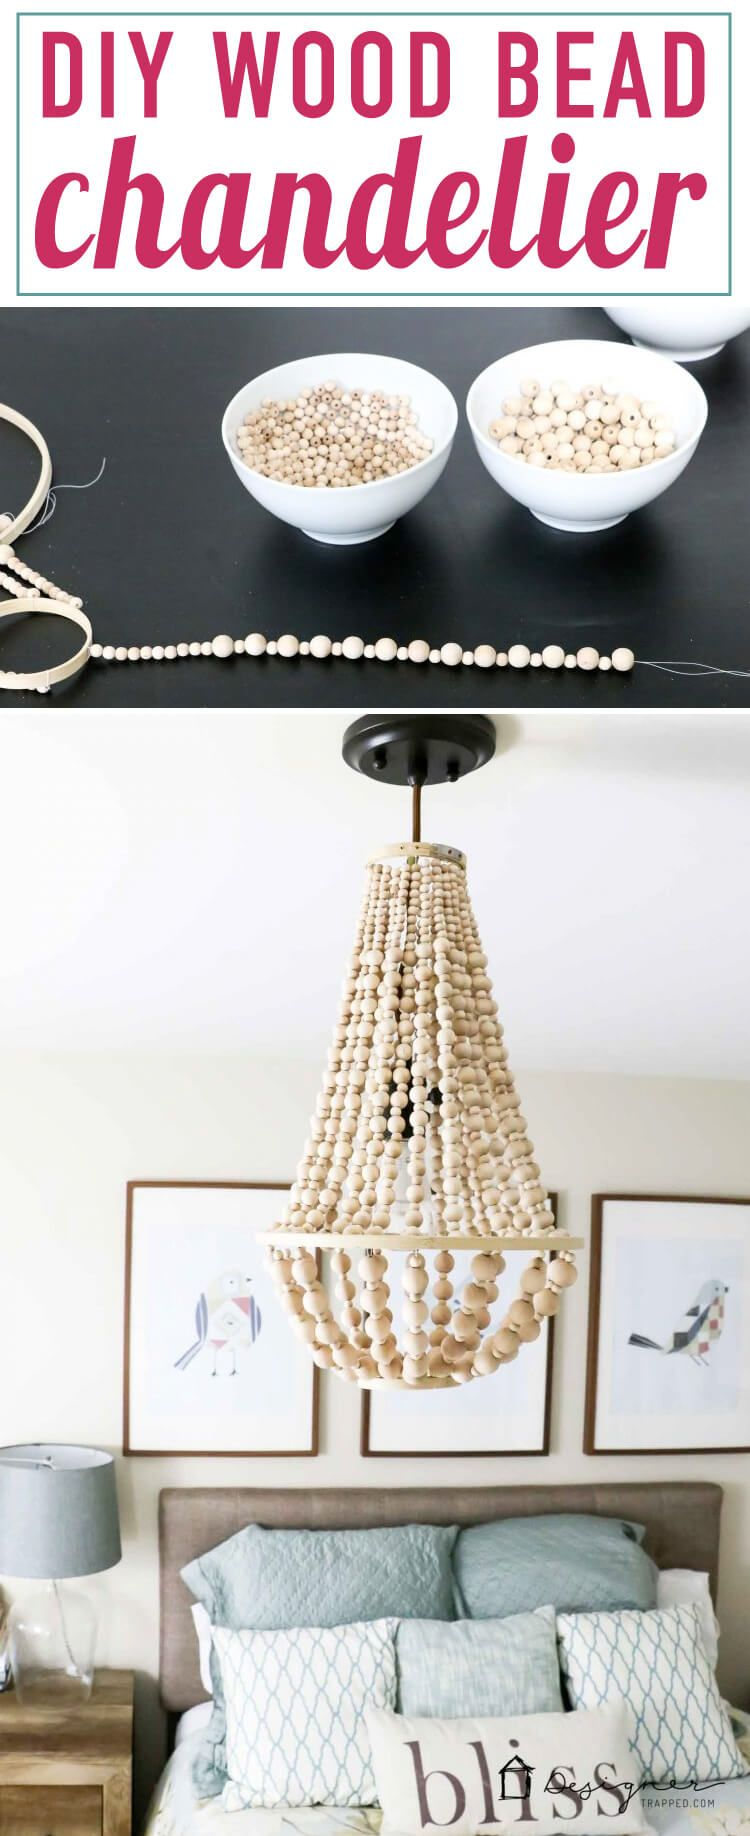 Diy chandelier from wood beads wood bead chandelier diy diy chandelier from wood beads arubaitofo Images